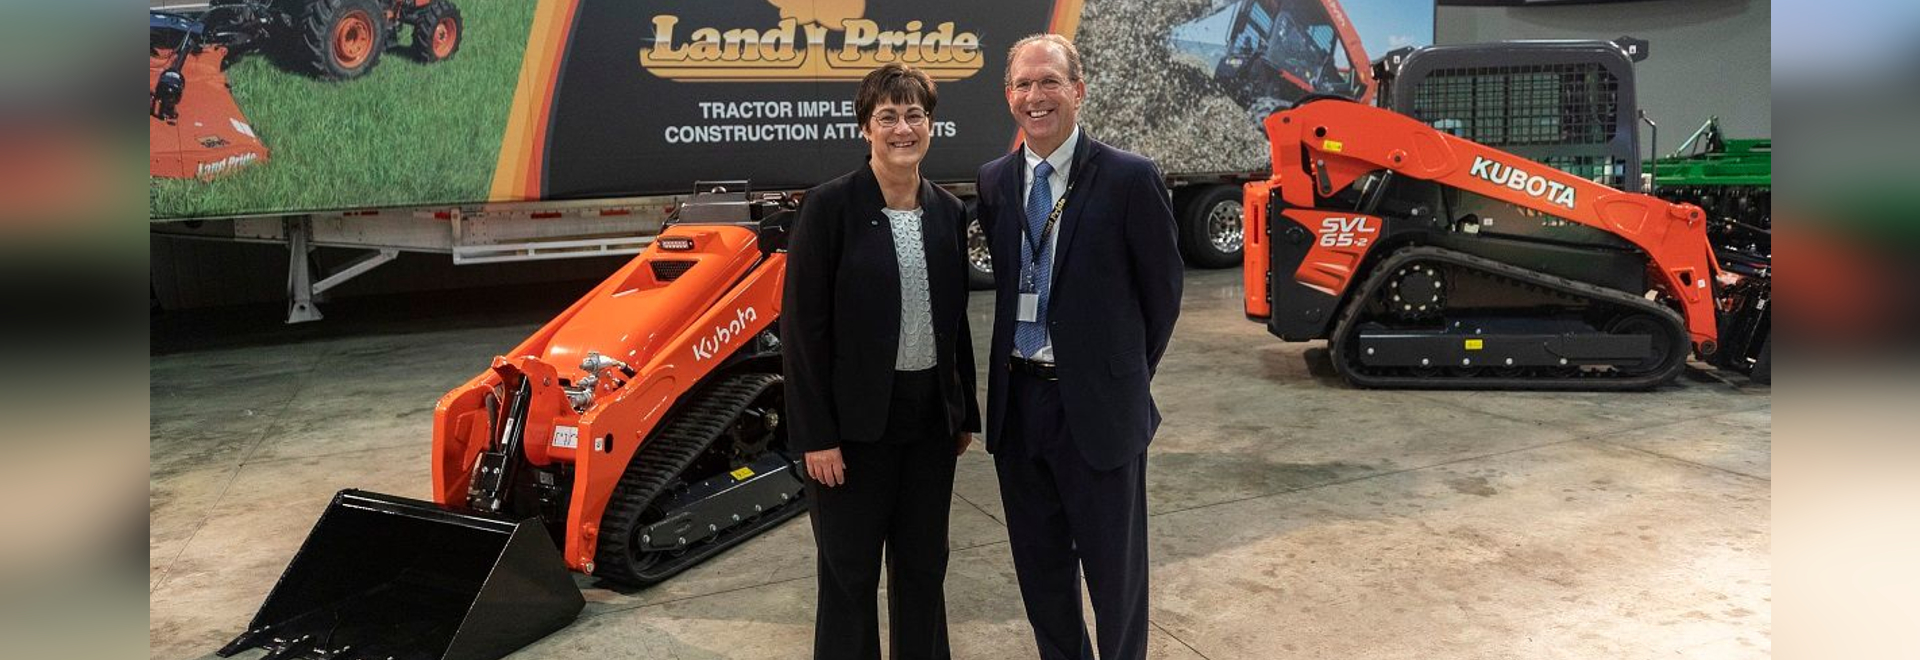 ANNOUNCEMENT: Linda Salem (left), president and CEO of Great Plains Mfg Inc., and John Quiley, president of Land Pride, participated in the announcement of a $53 million expansion project for Great...